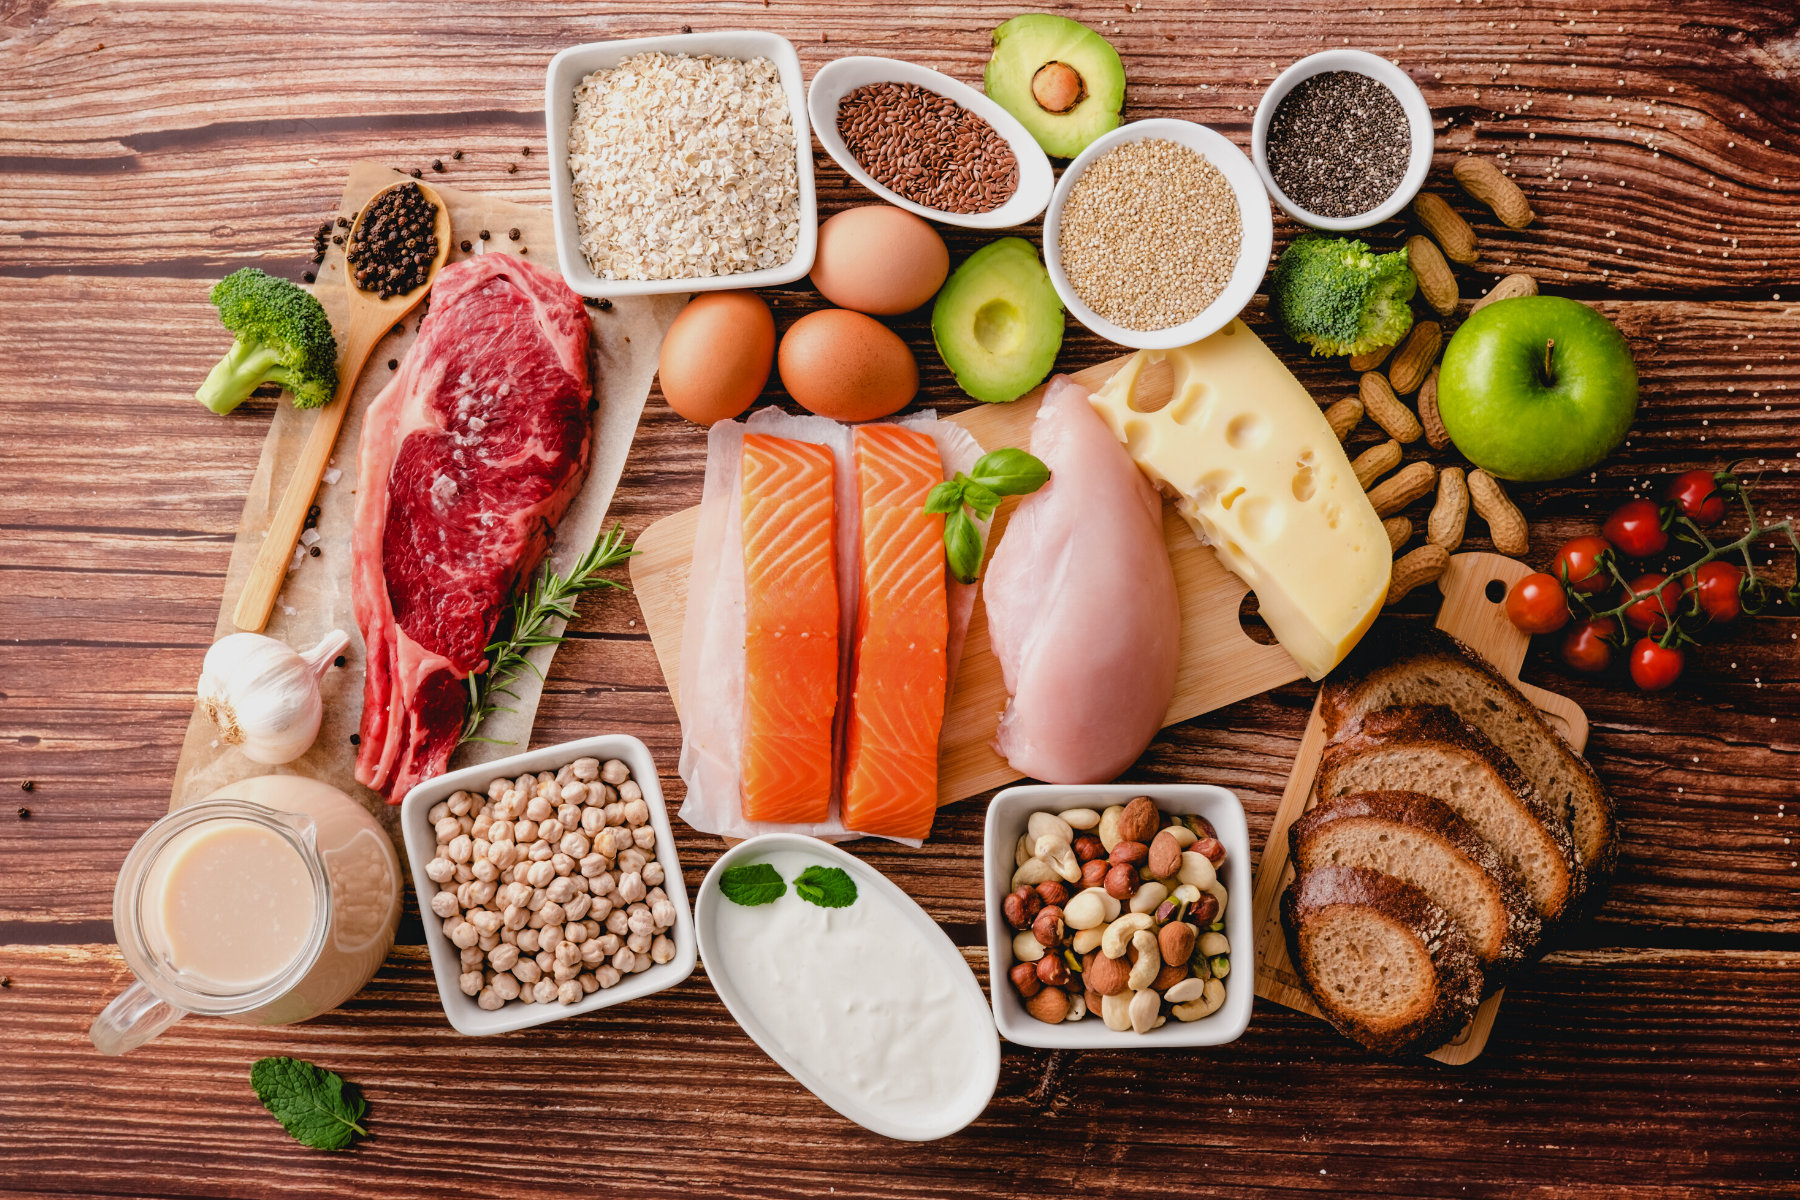 Health fats, protein and carbs